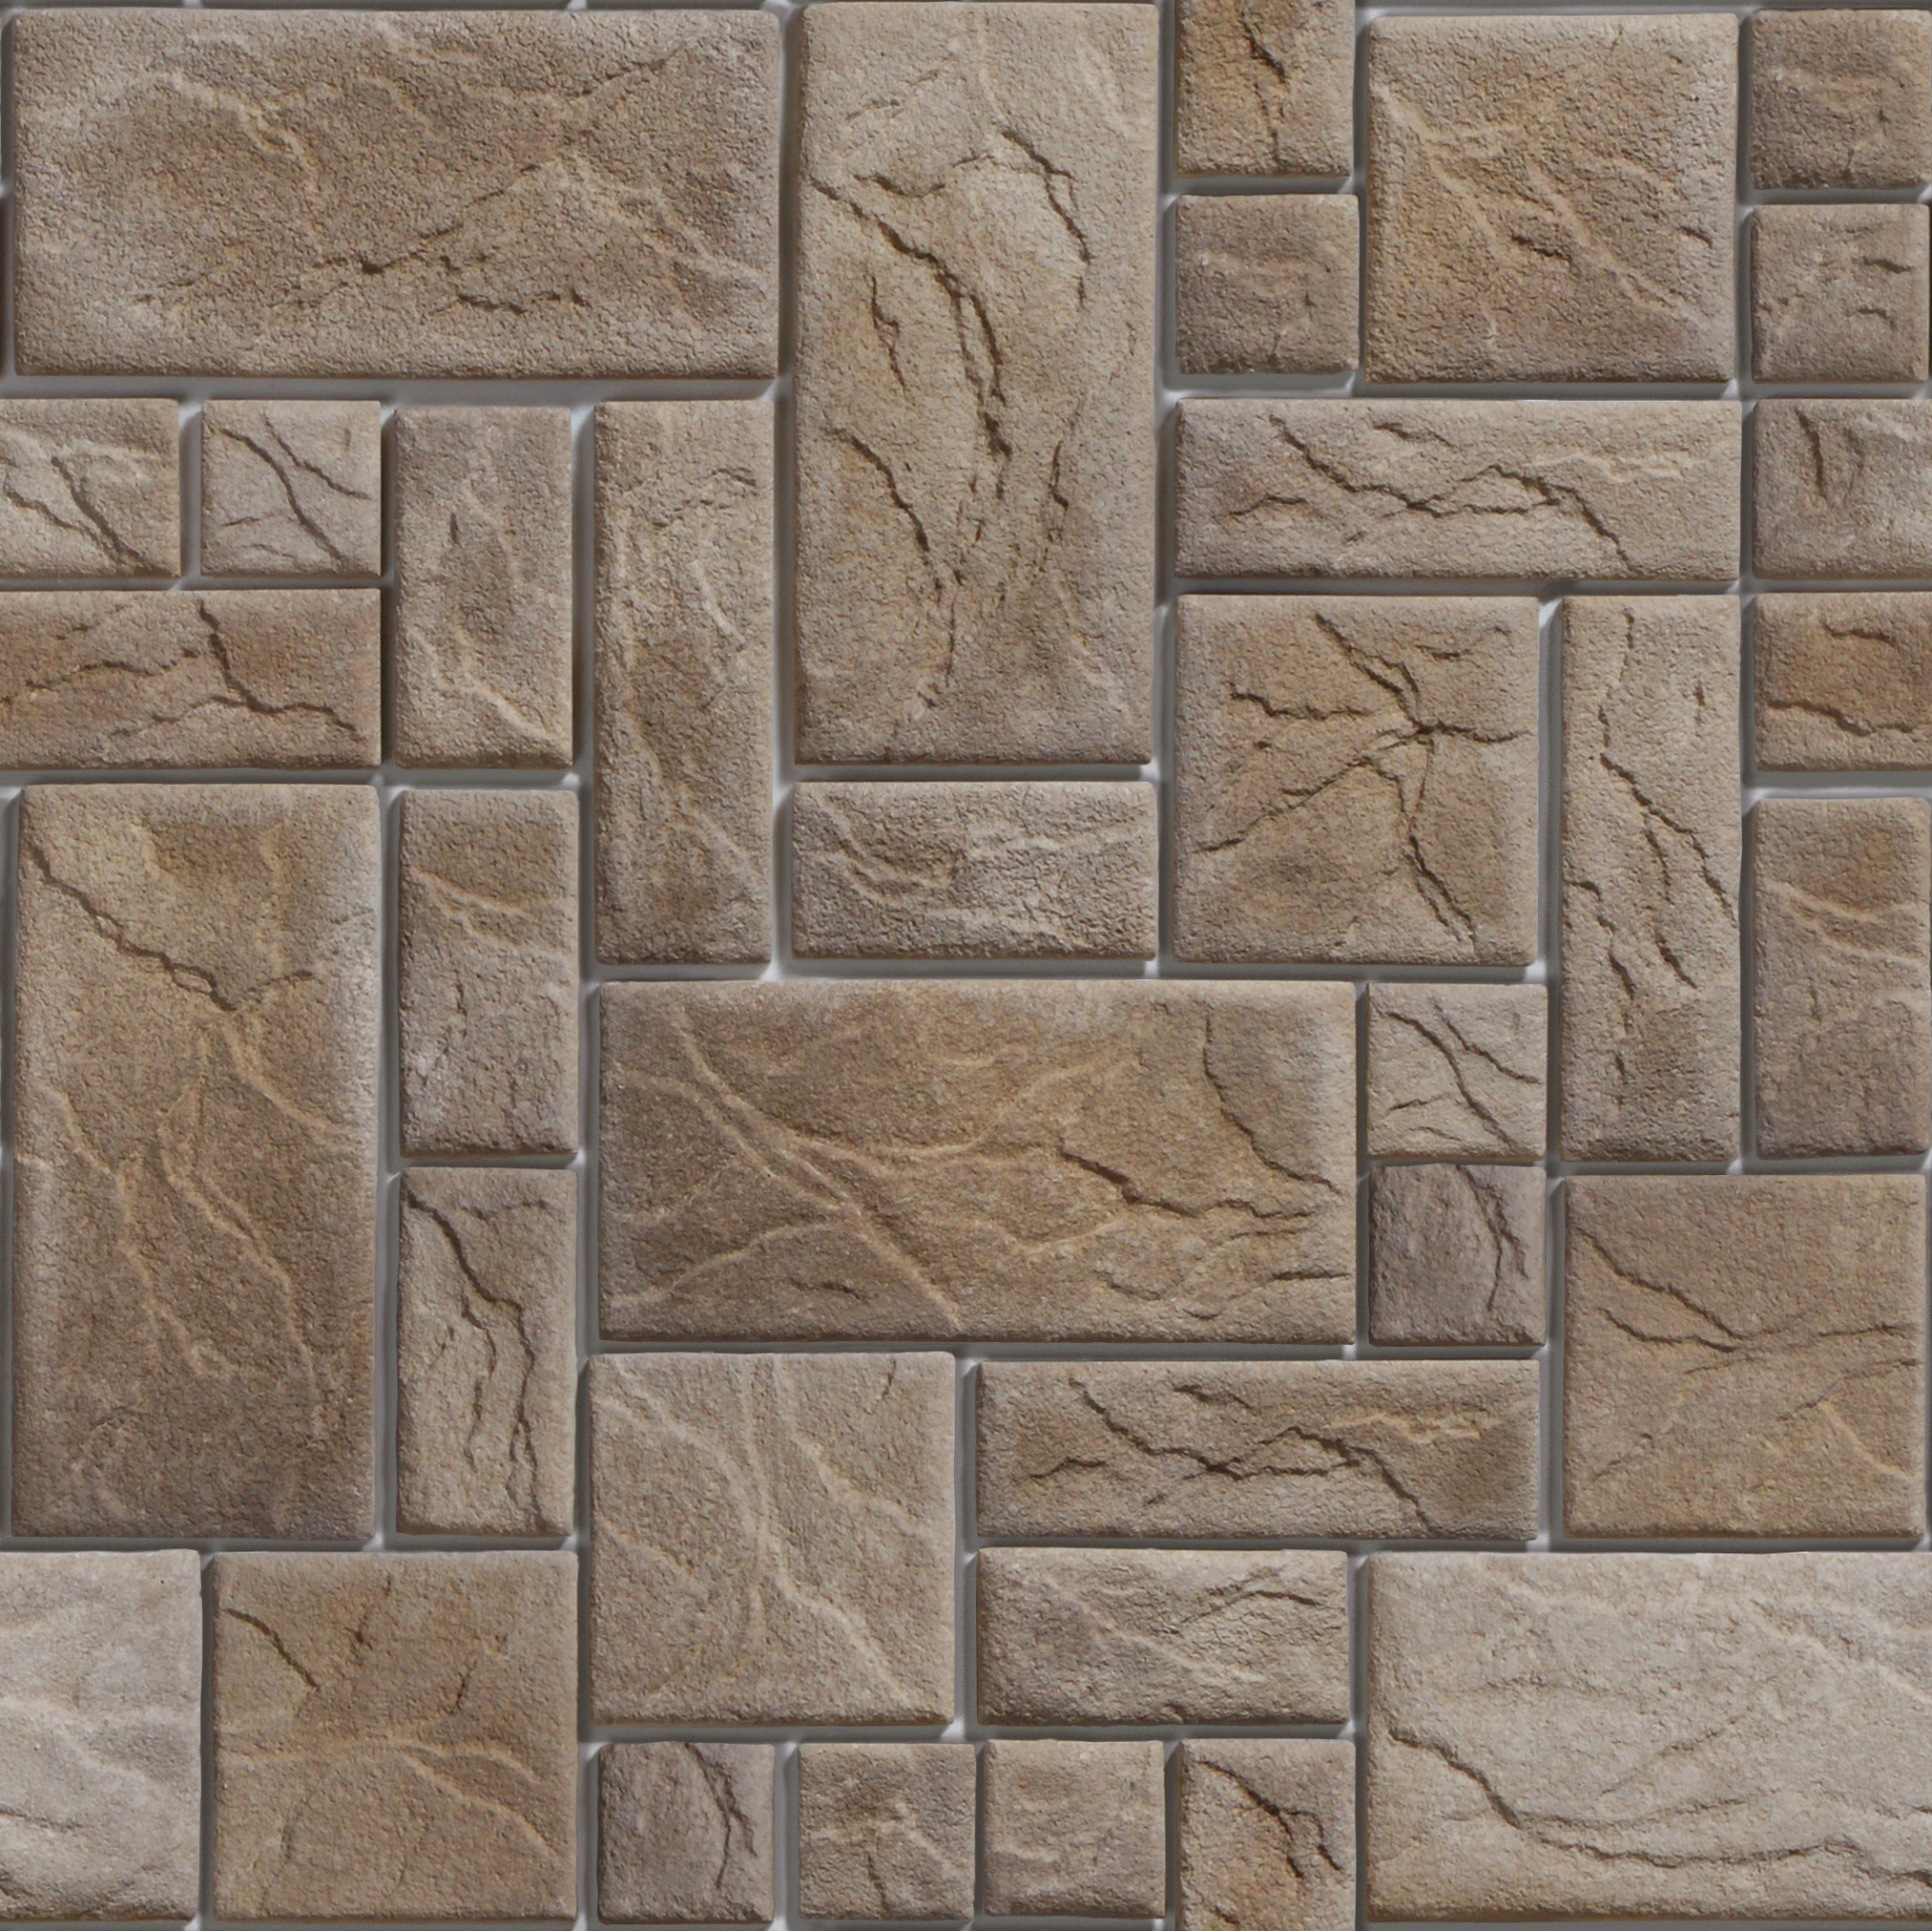 Ceramic tile and stone